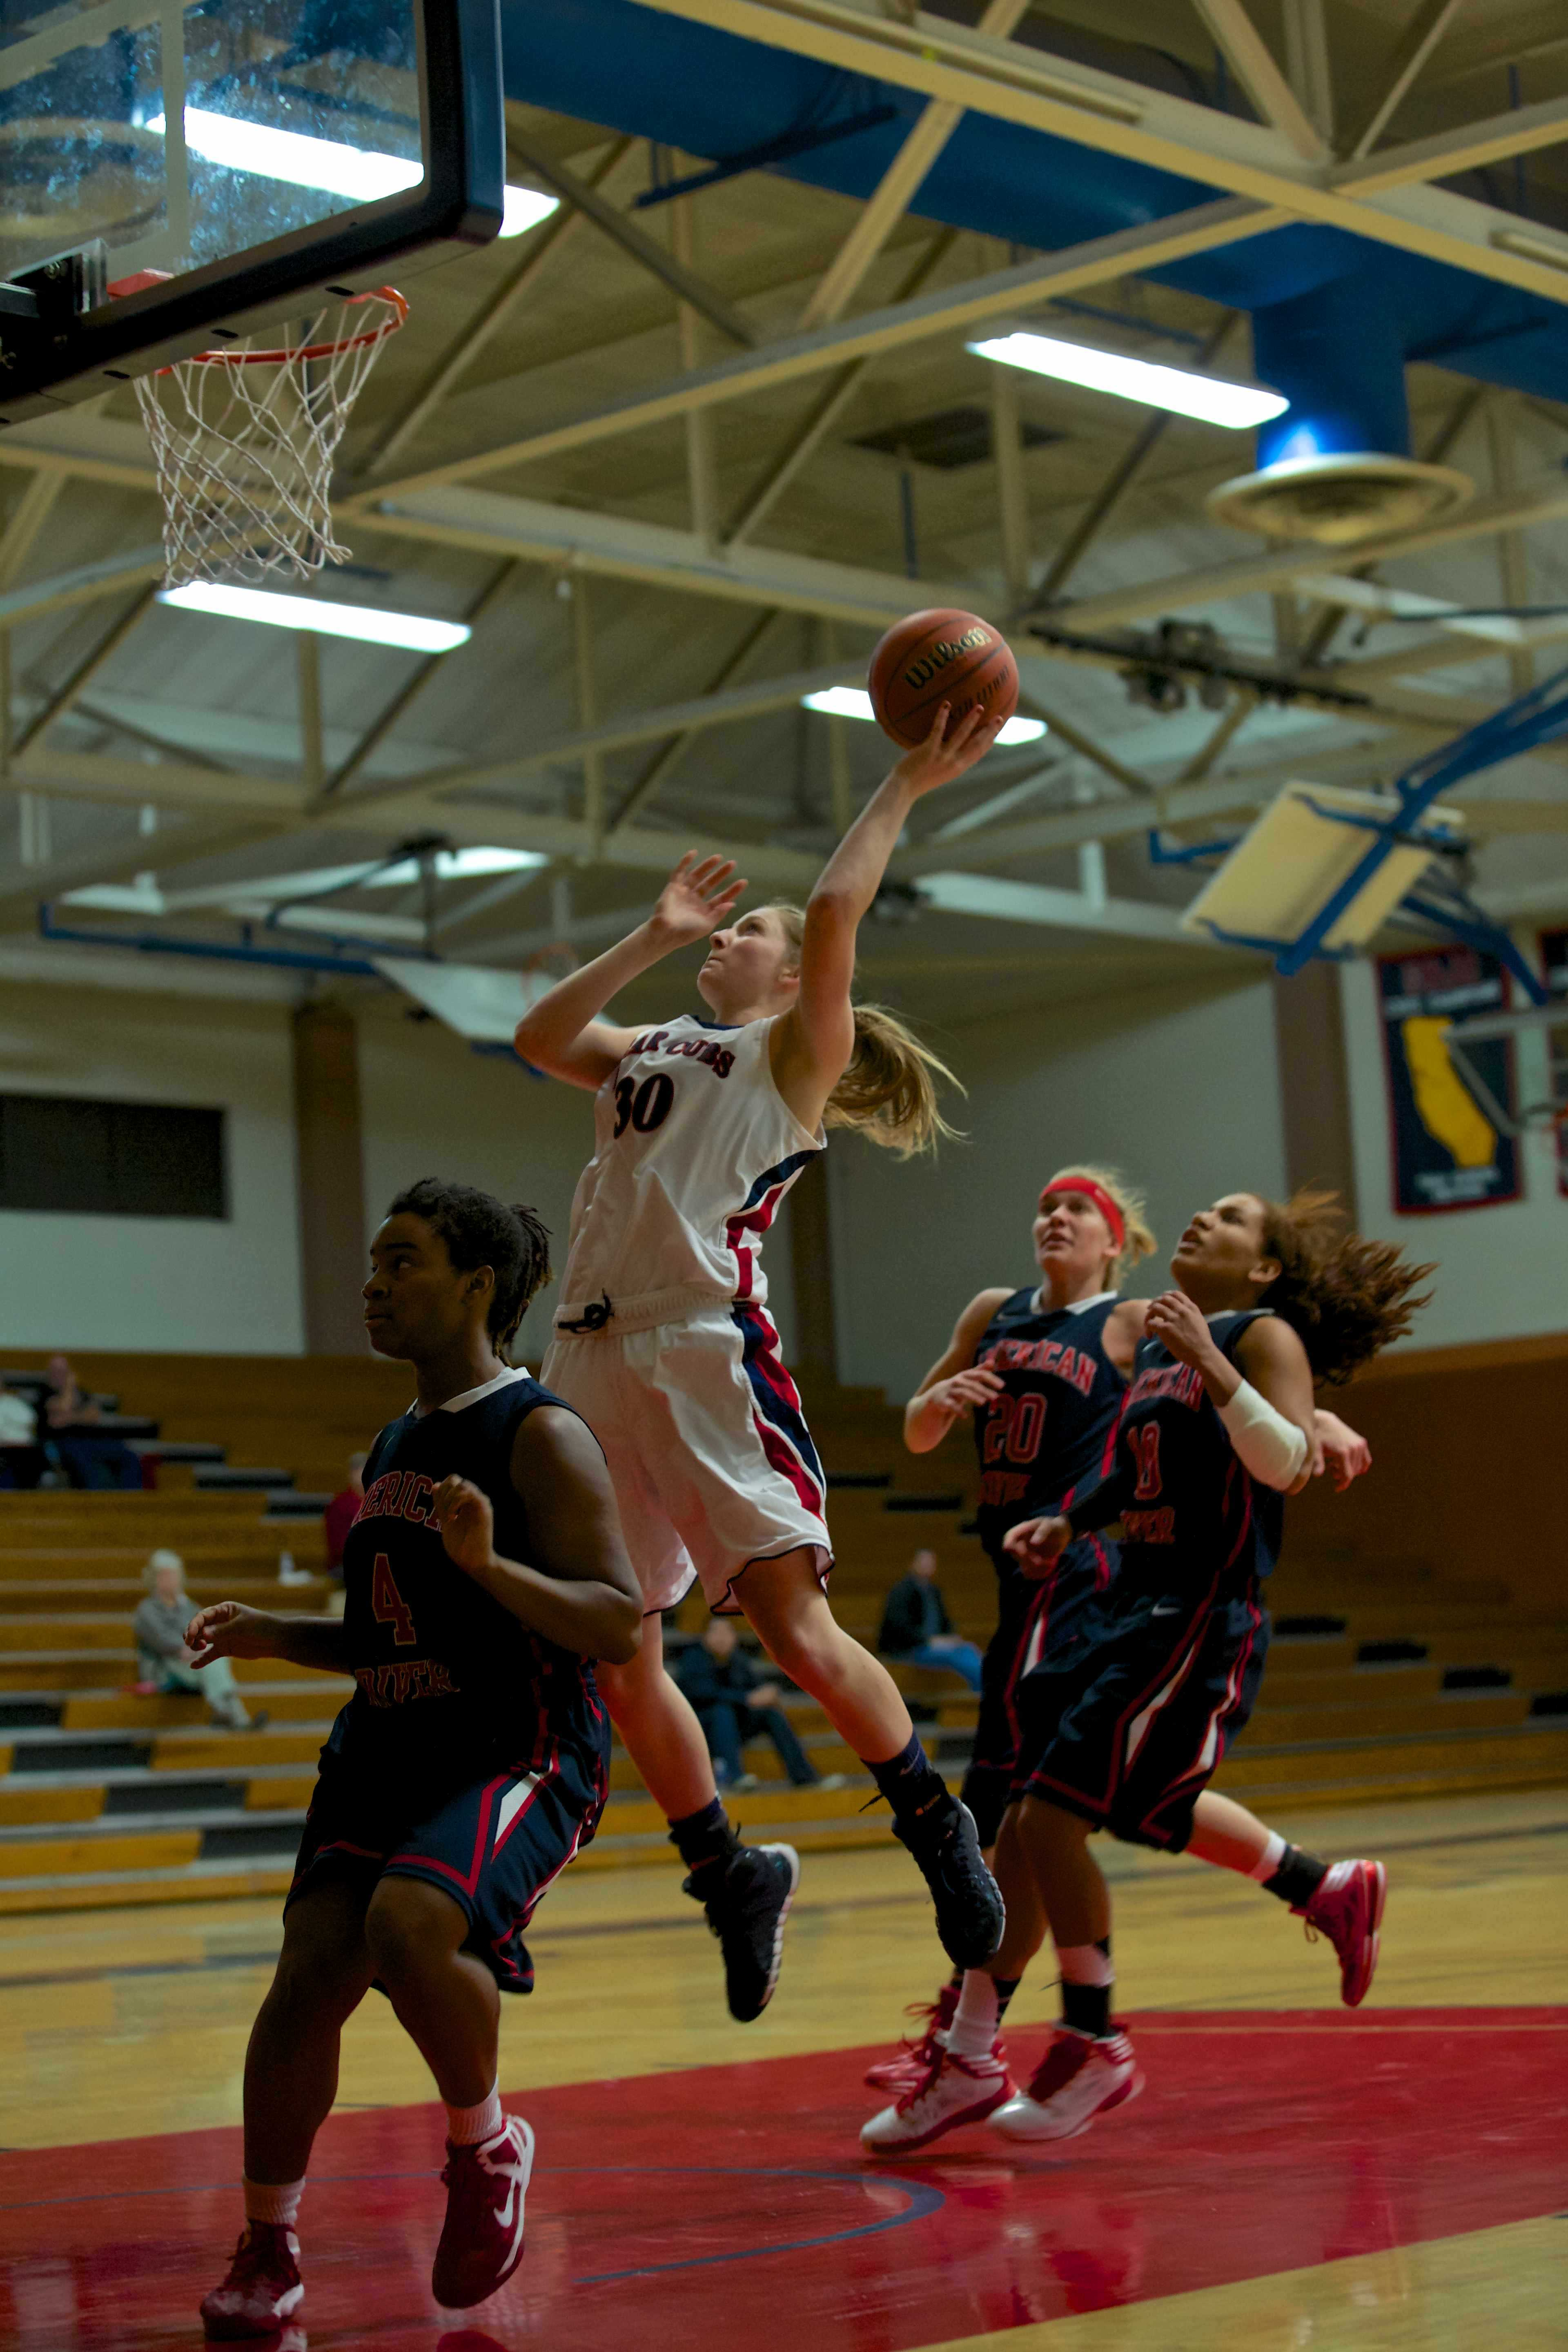 Gretchen Harrigan finishes a fast break for a basket against ARC Jan. 21 in Haehl Pavilion. The next home game is Jan. 31.